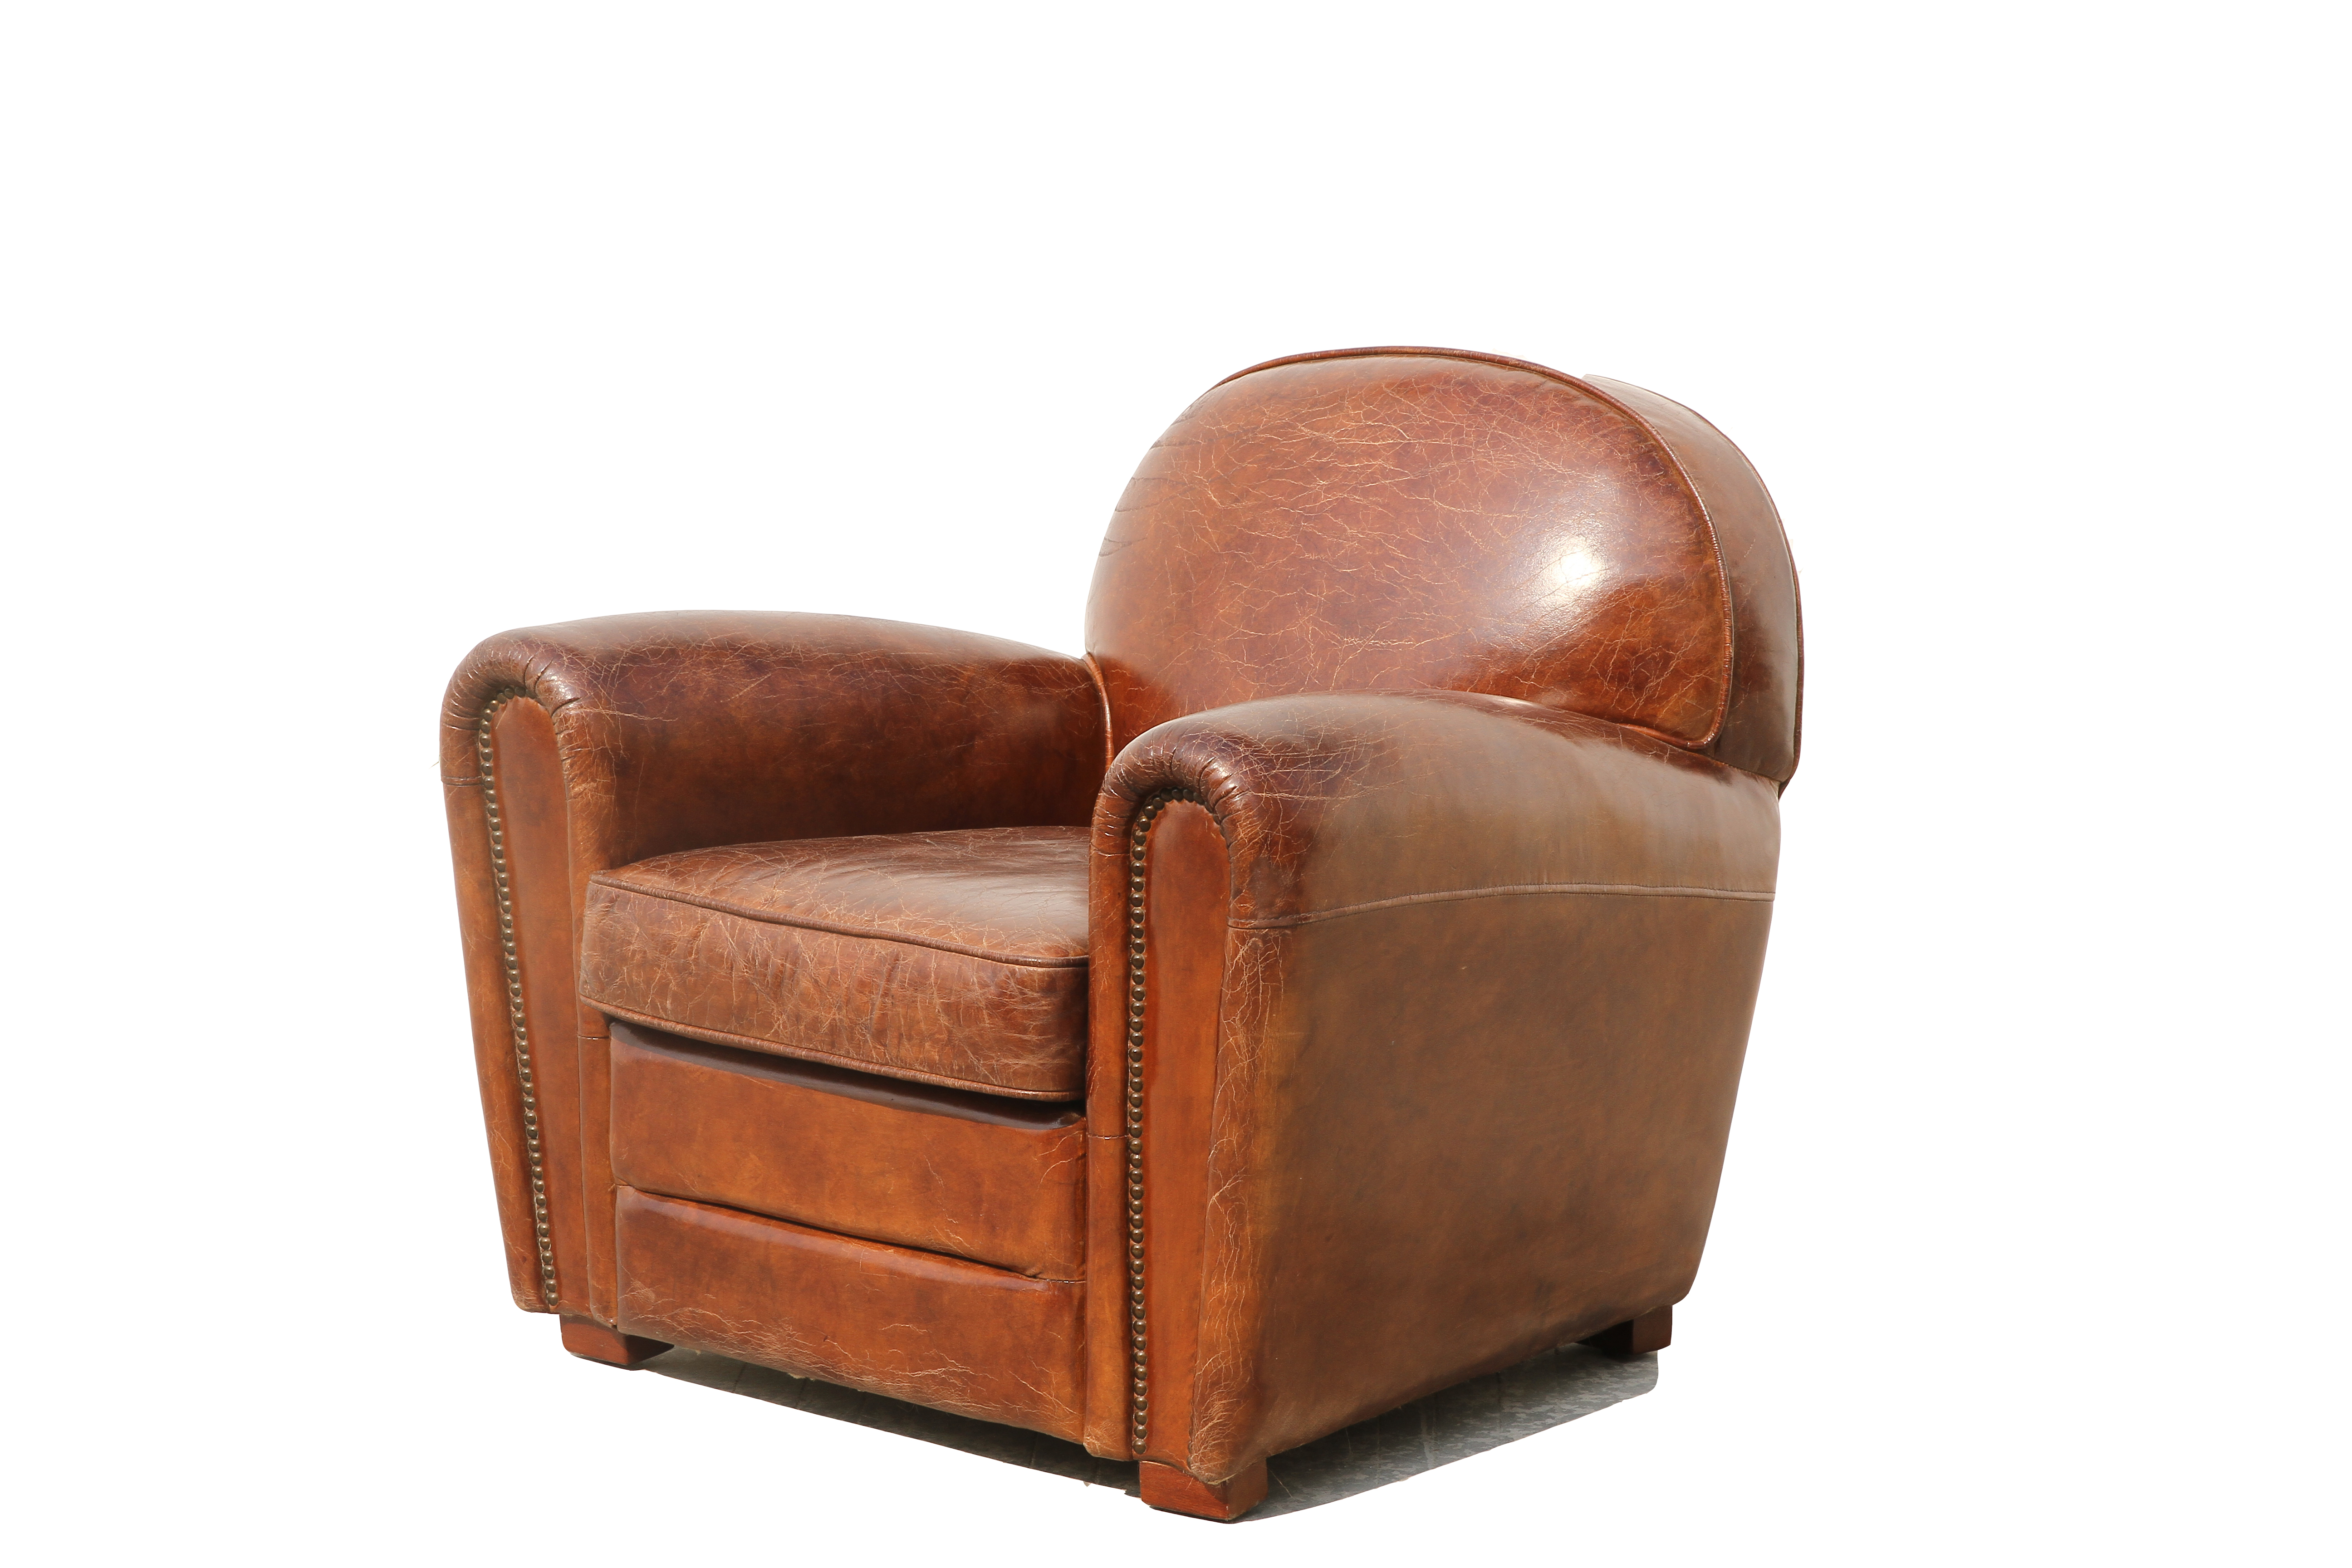 Attractive Pasargad Genuine Leather Paris Club Chair   Image 3 Of 5